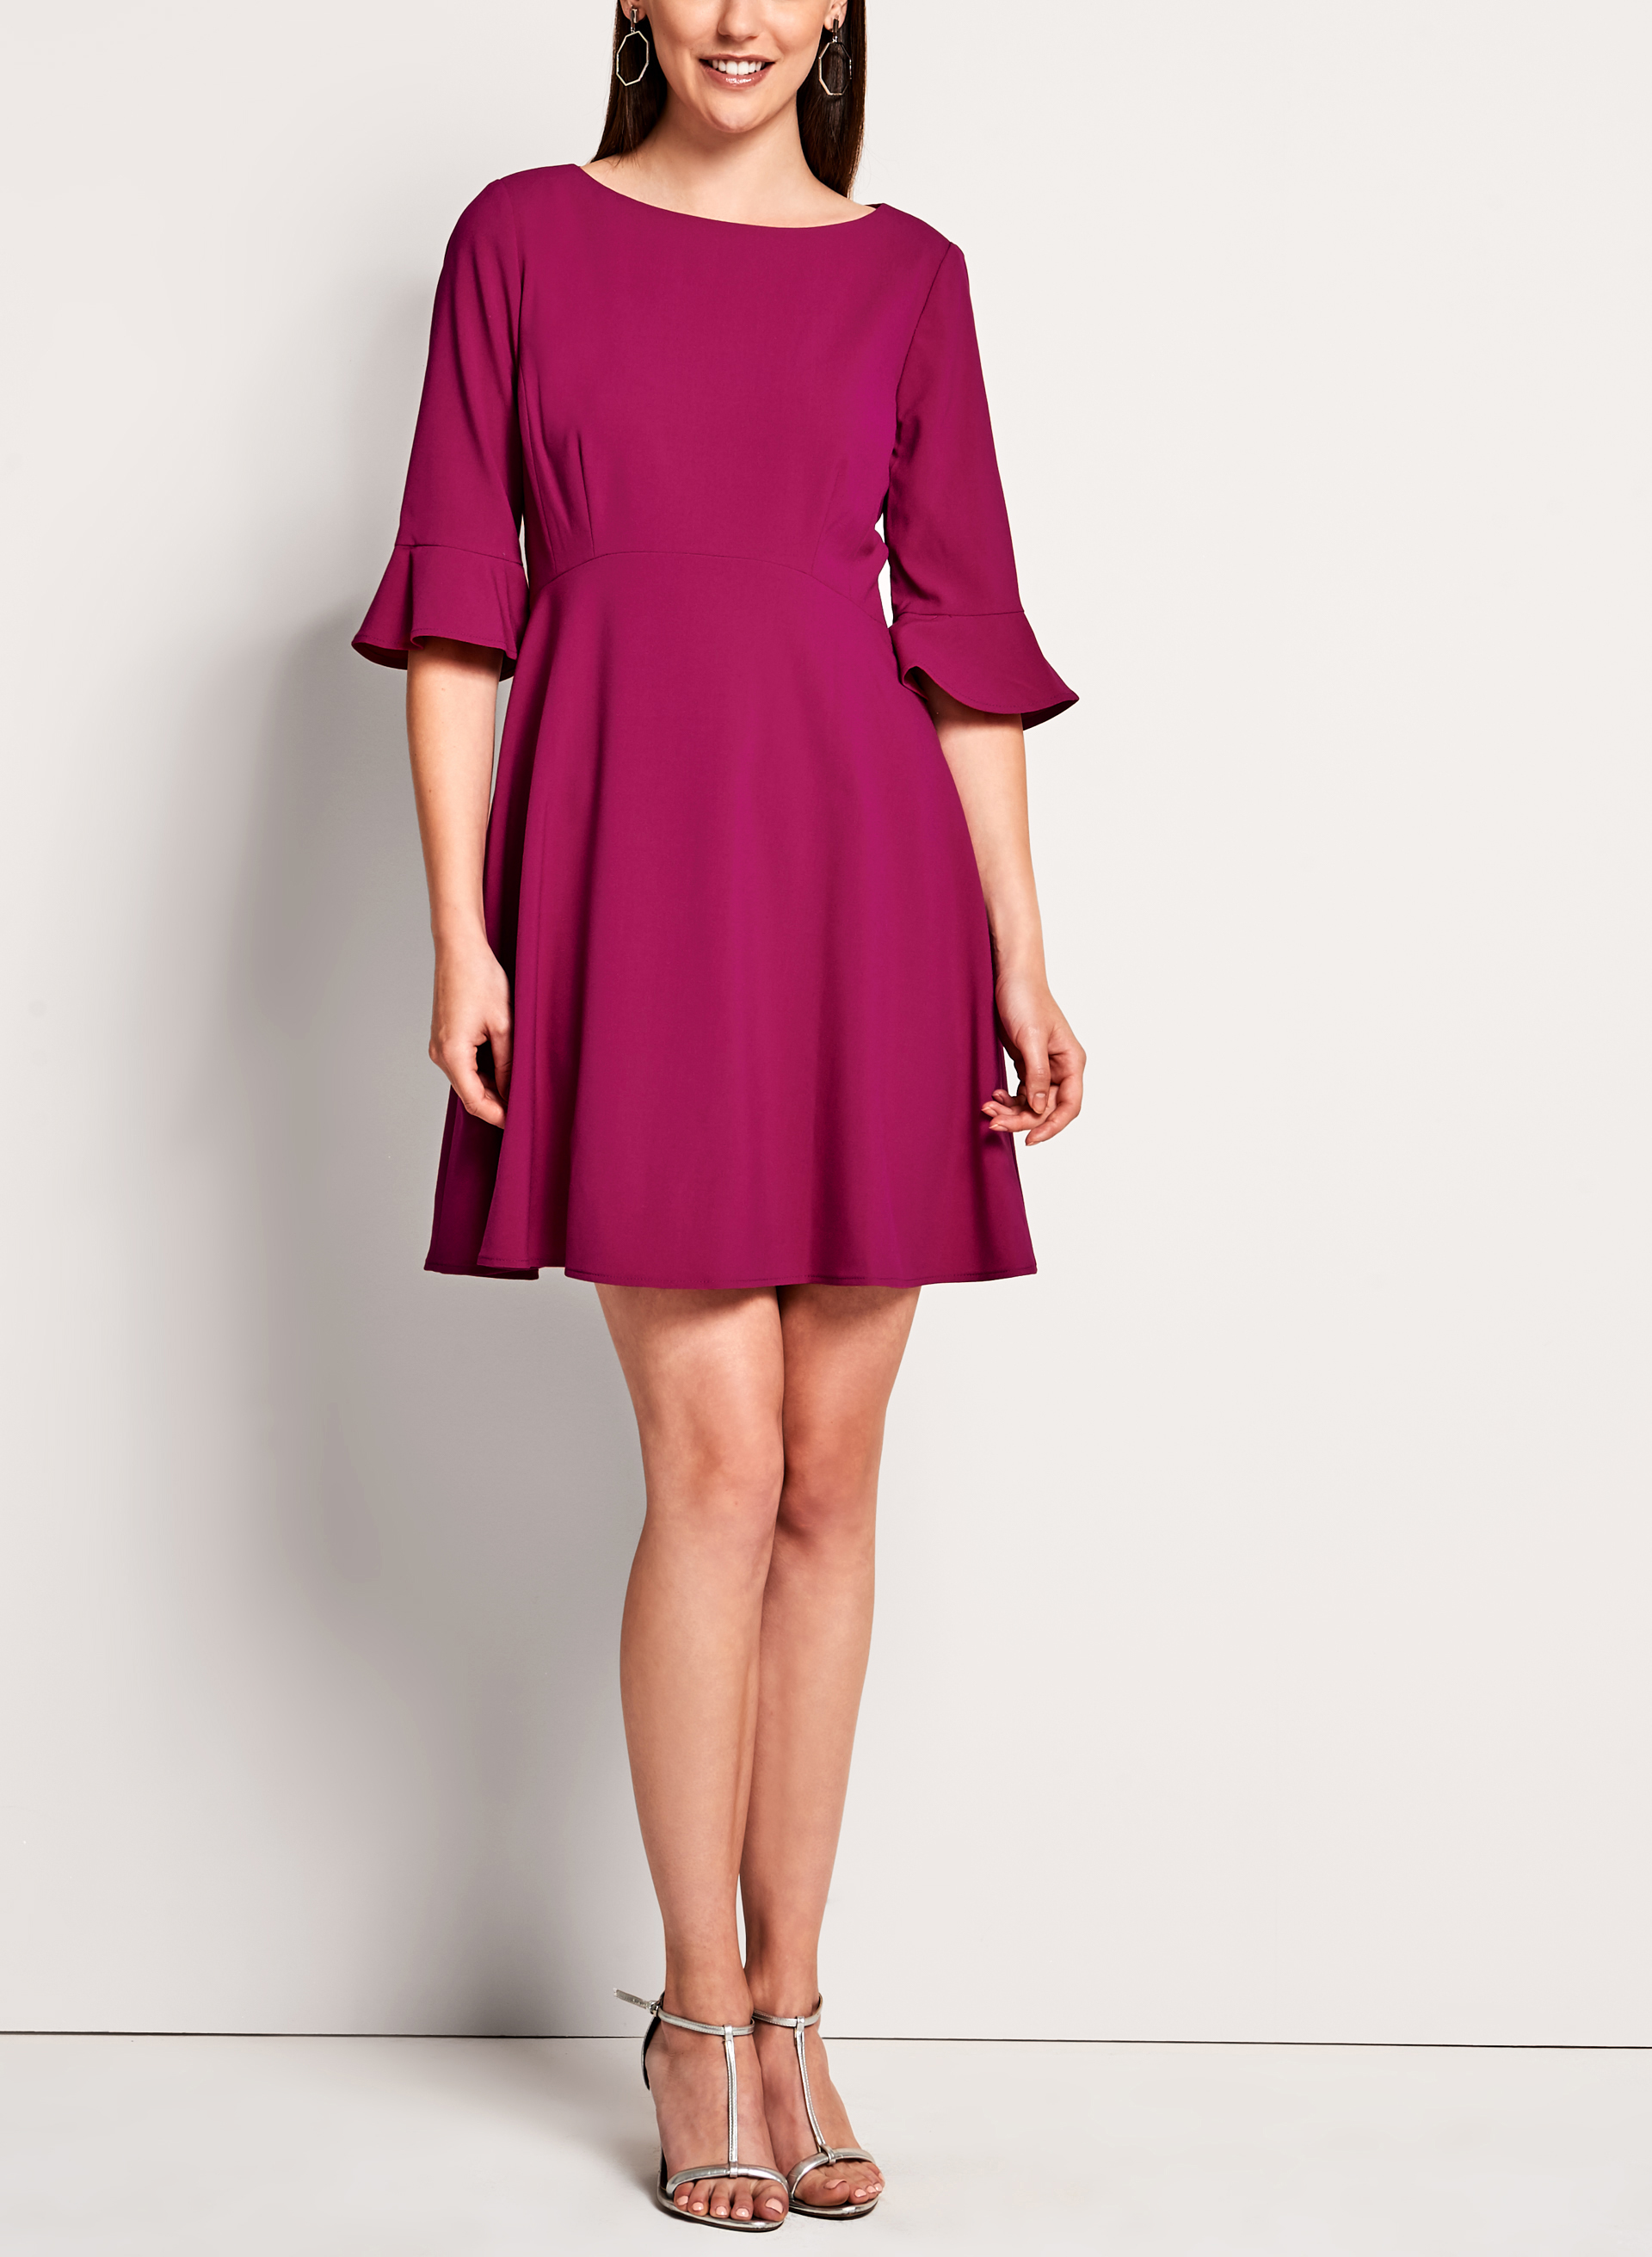 Tahari - 3/4 Sleeve Fit & Flare Dress, Pink, hi-res